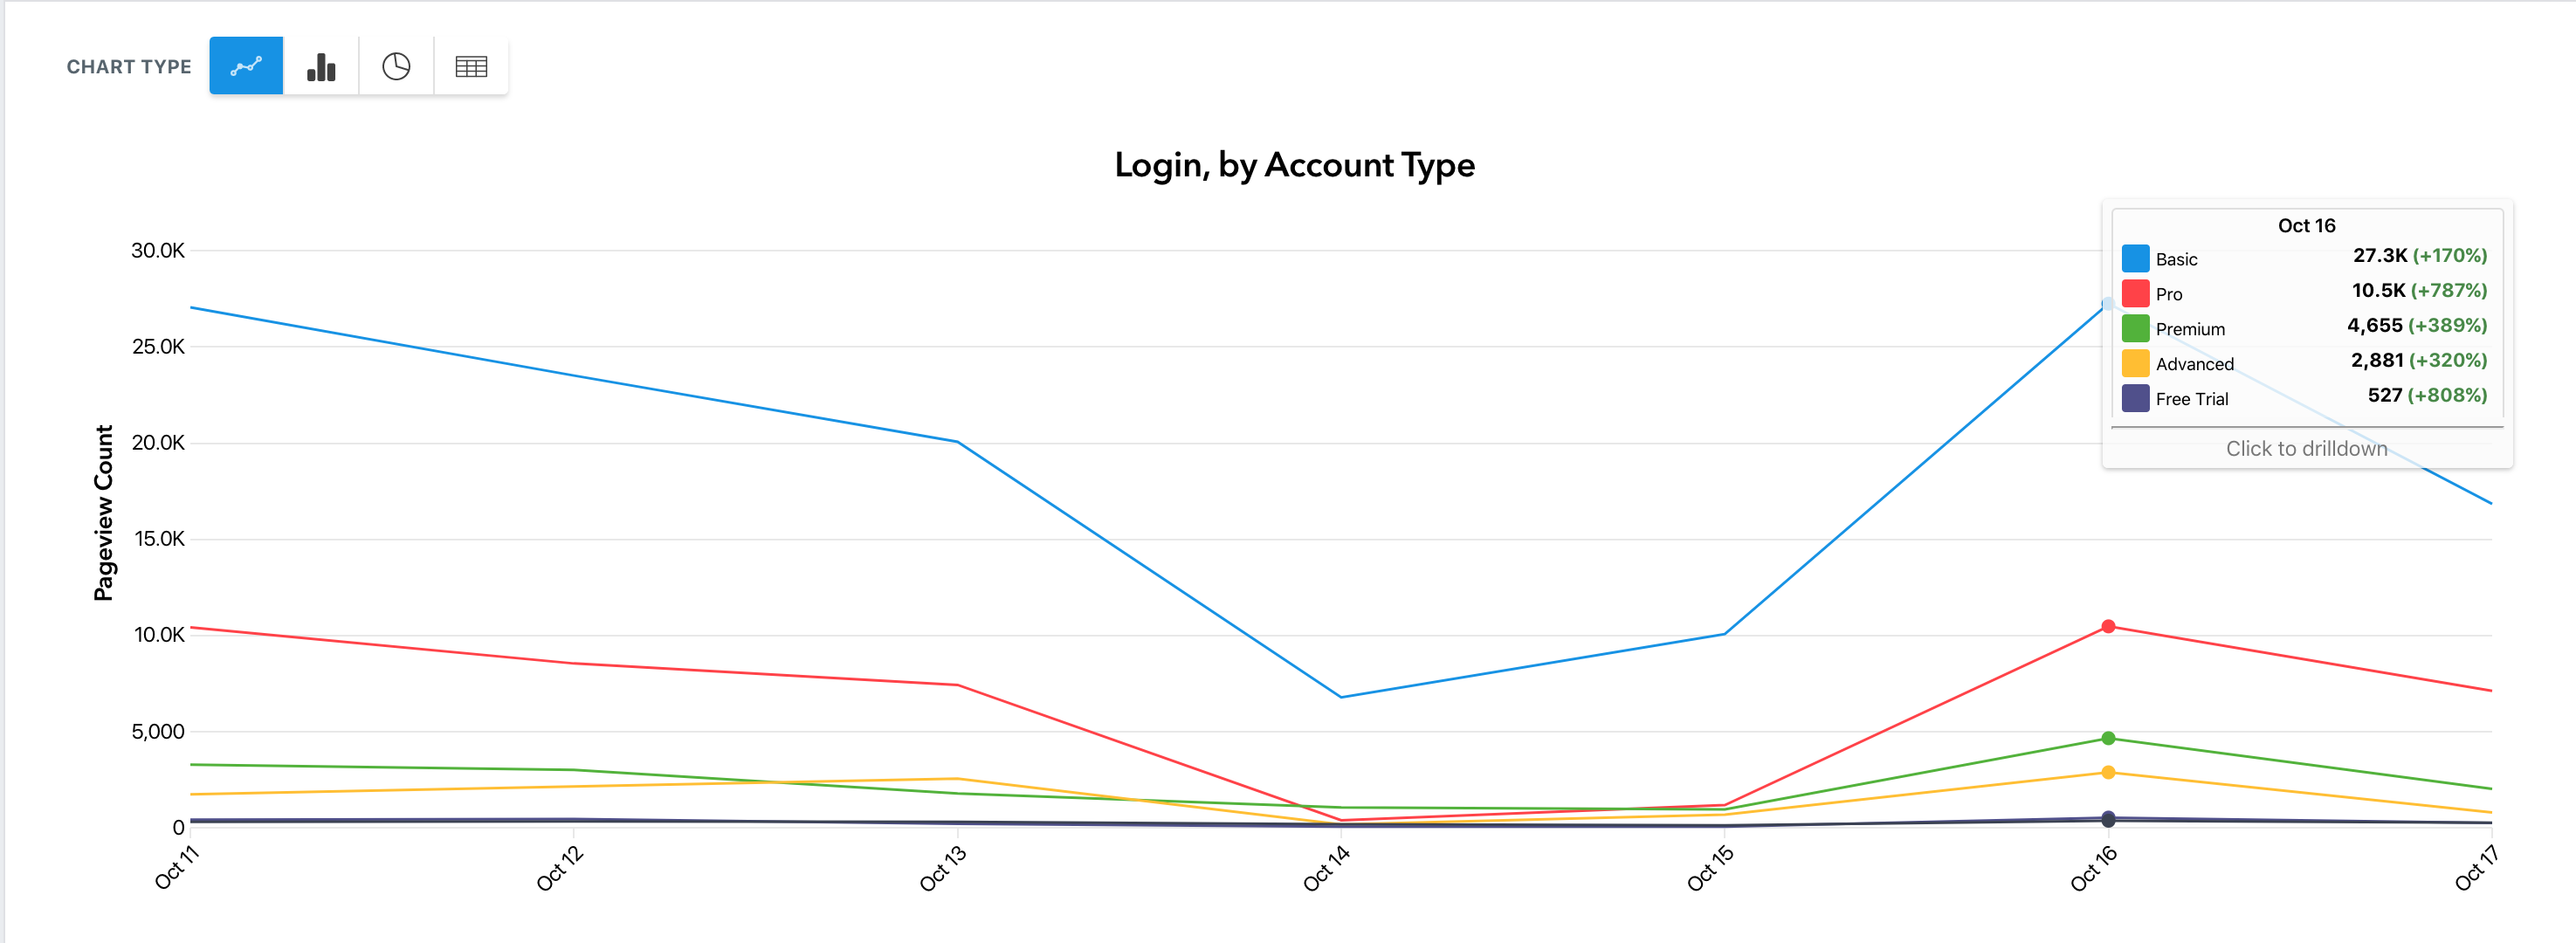 A line chart of Login by account type